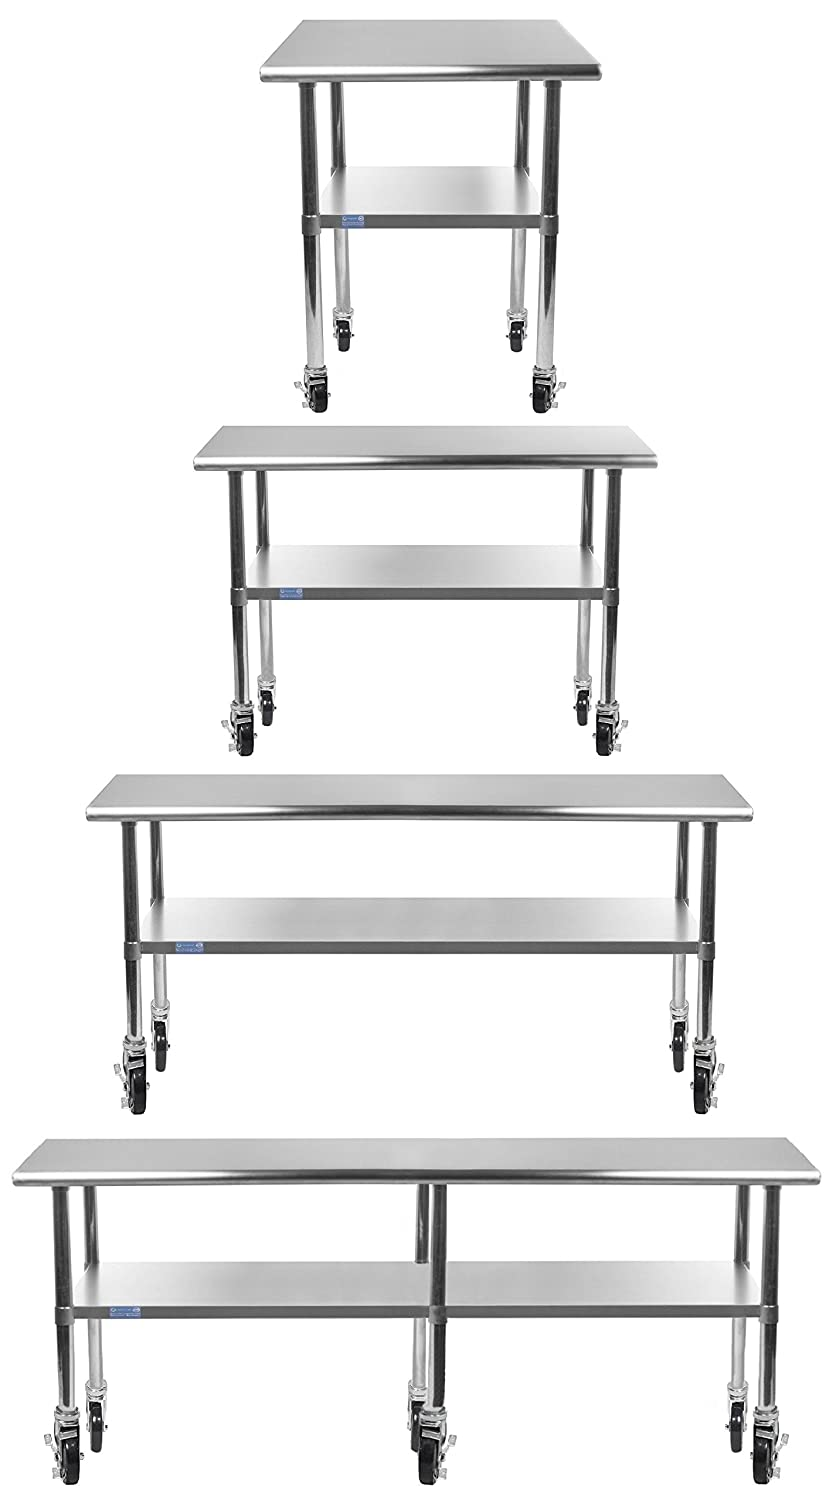 AmGood Stainless Steel Work Table - with Undershelf & Casters (Wheels) | Food Prep | Utility Work Station | NSF Certified | All Sizes